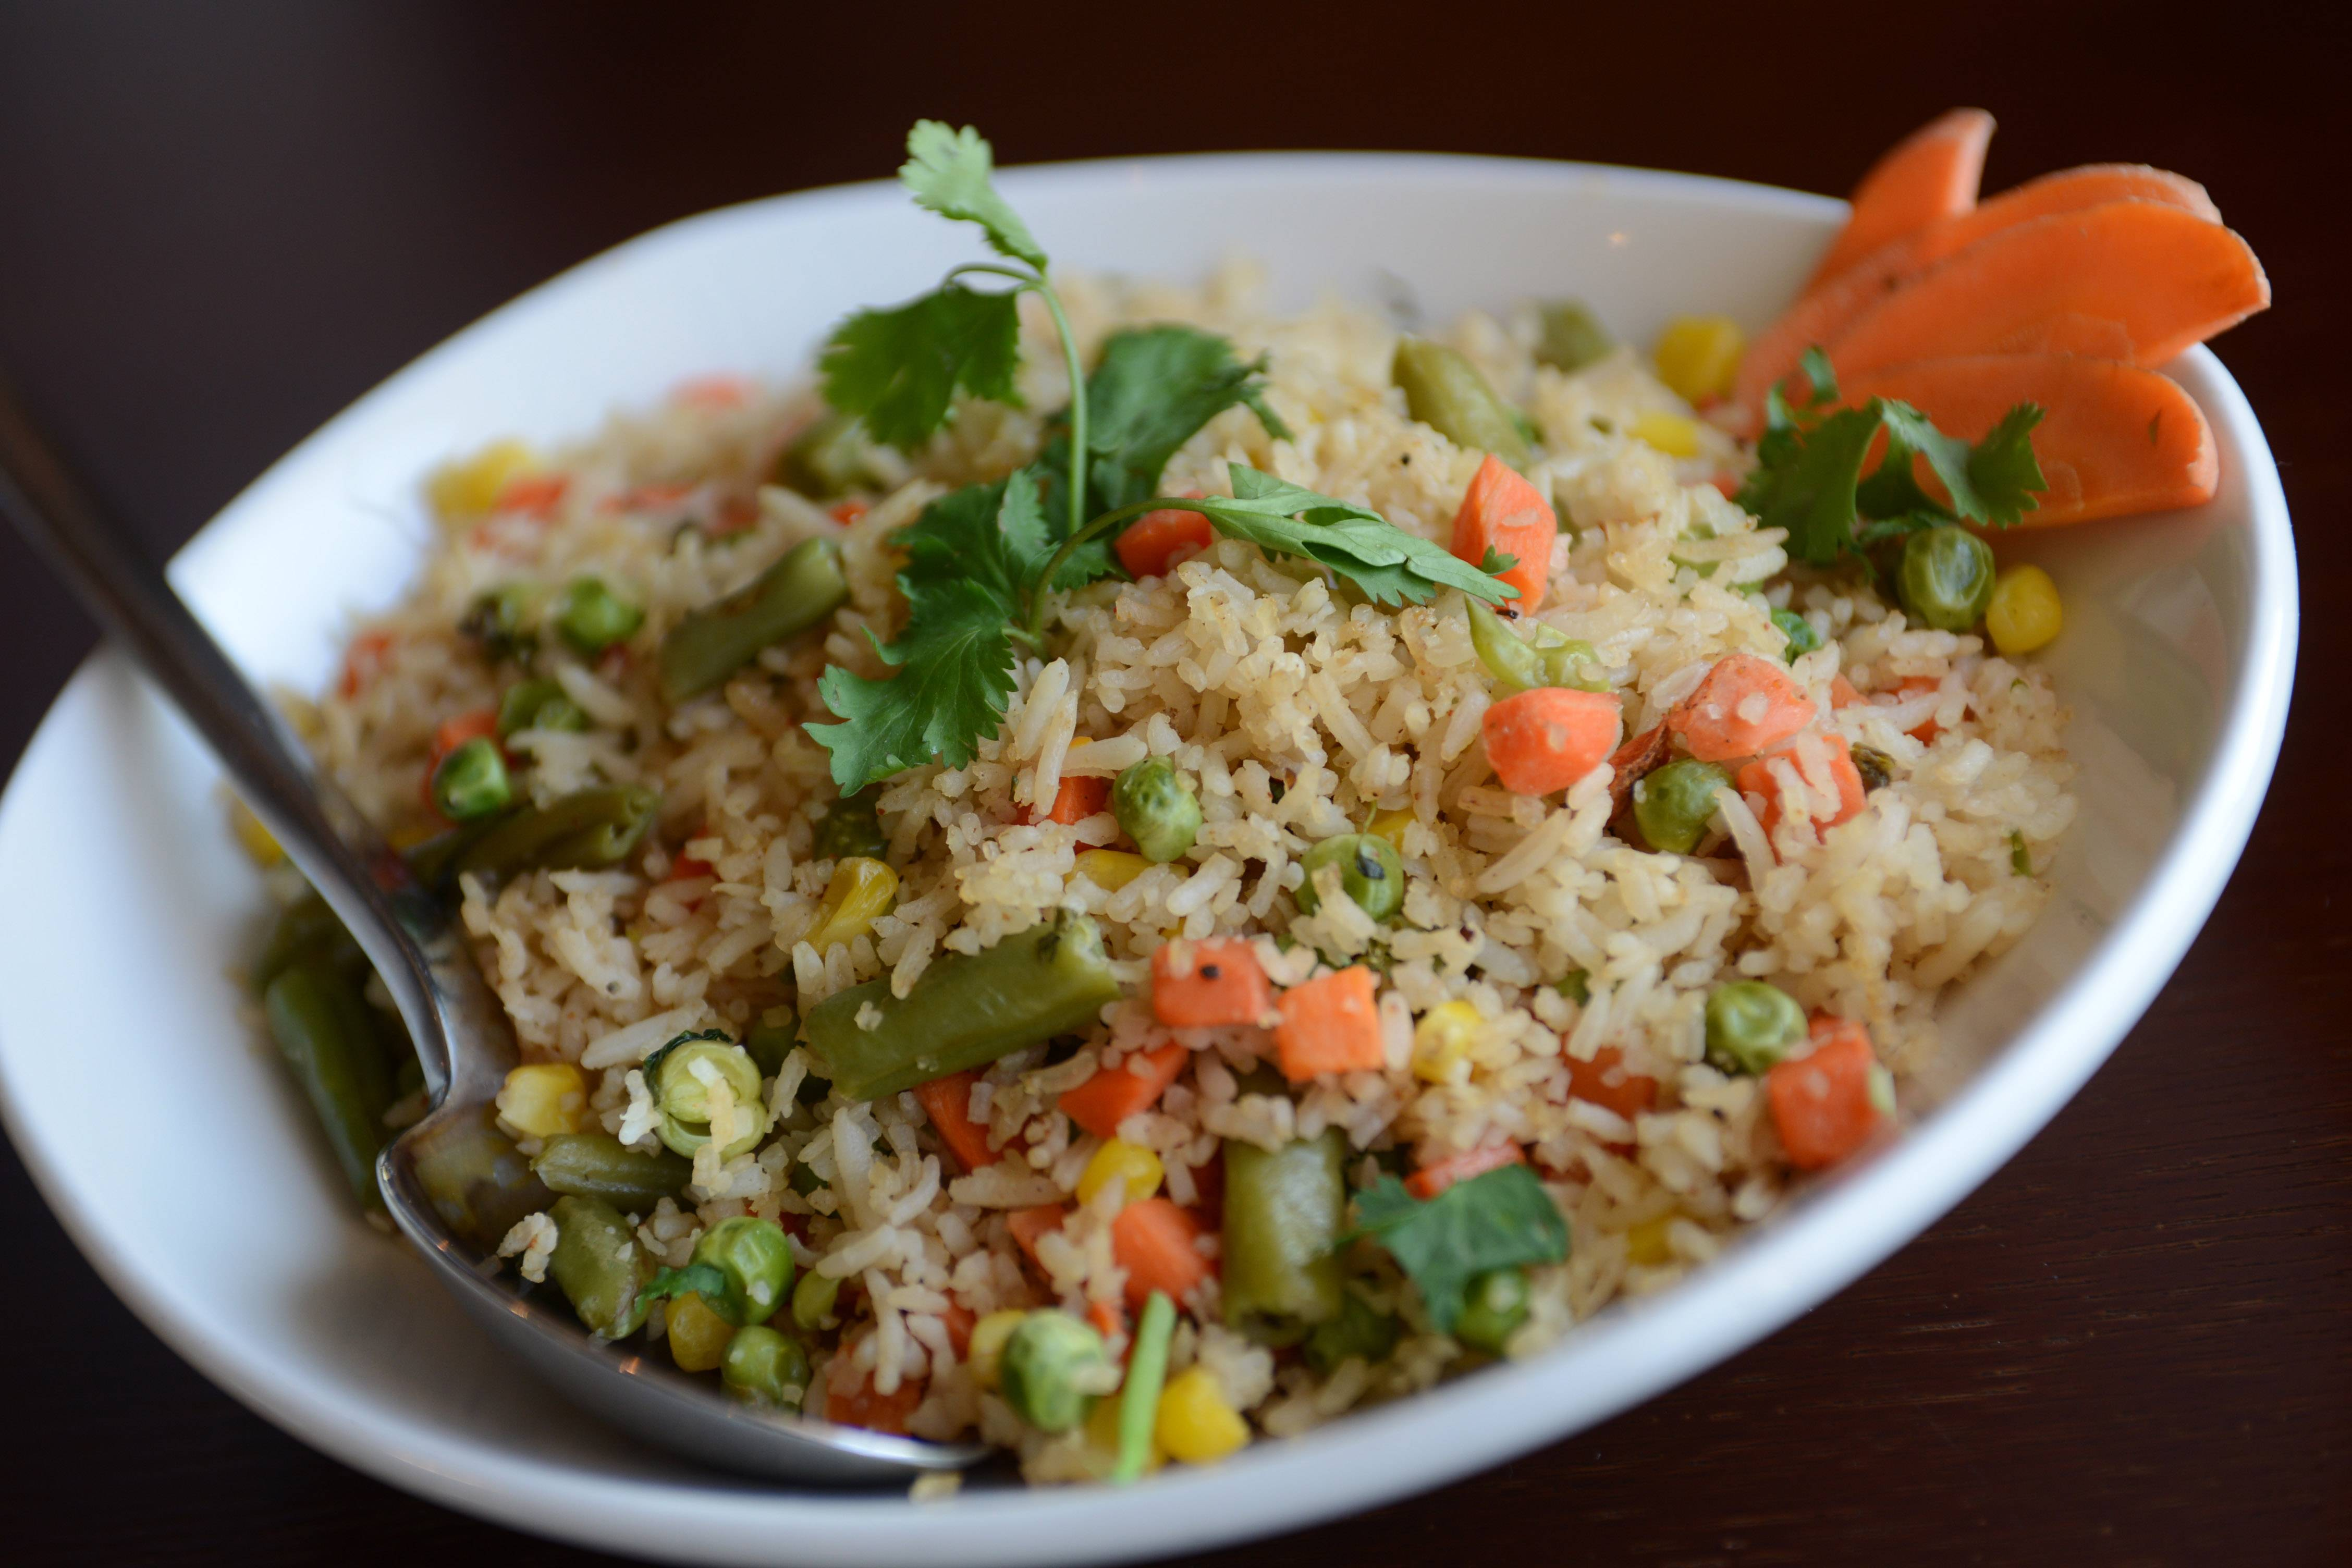 Fried rice with vegetables is among a few Indochinese dishes offered on the Spice Grill menu.